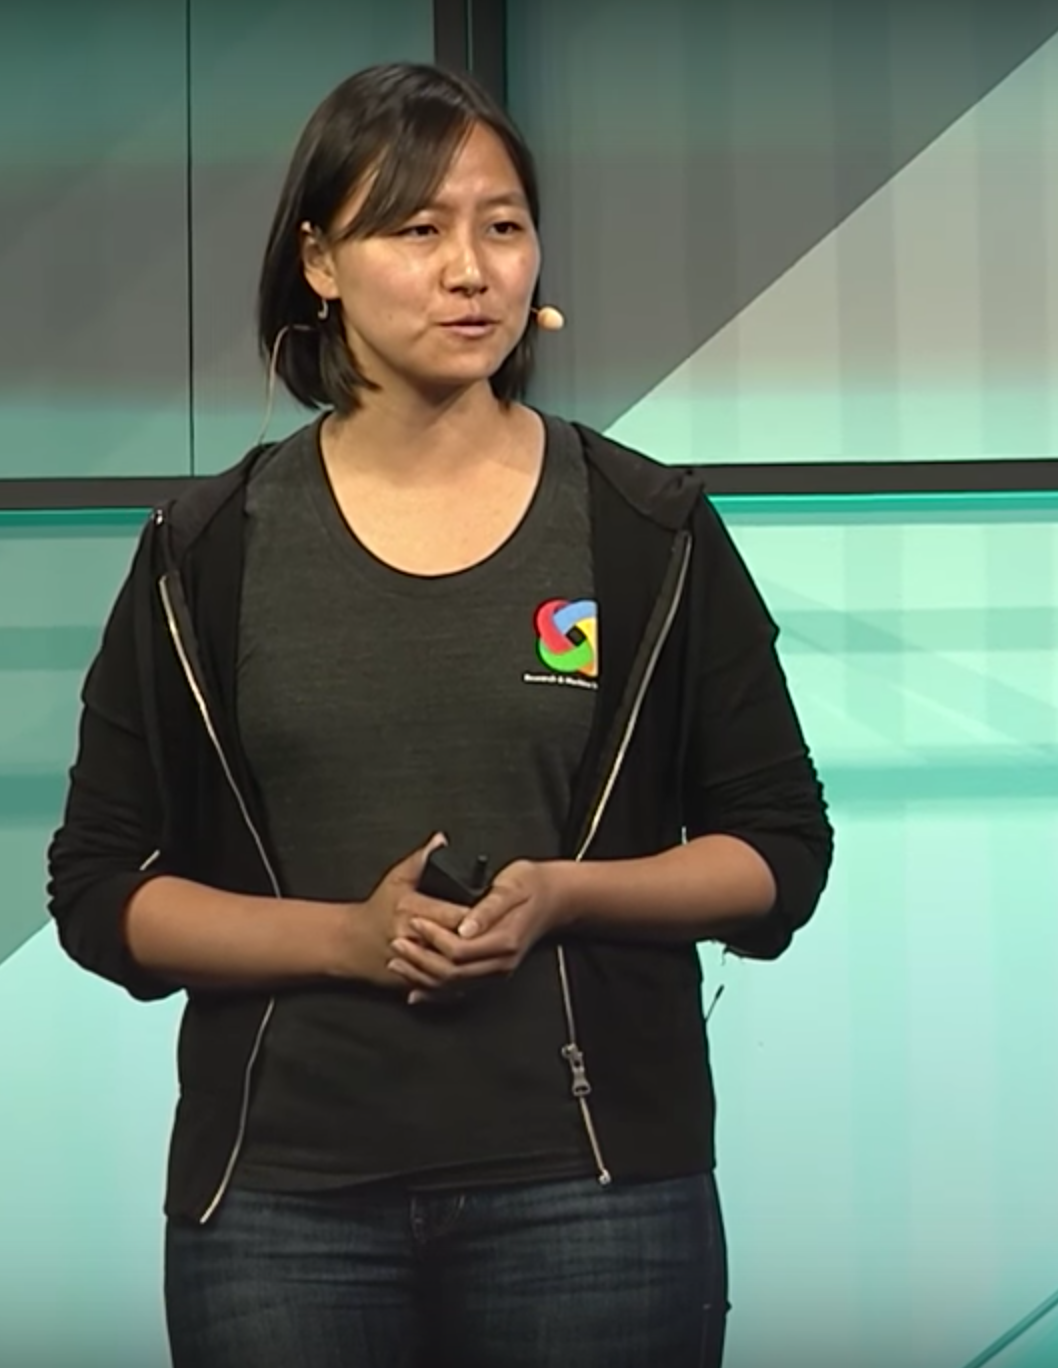 Hsiu Wang, Software engineer